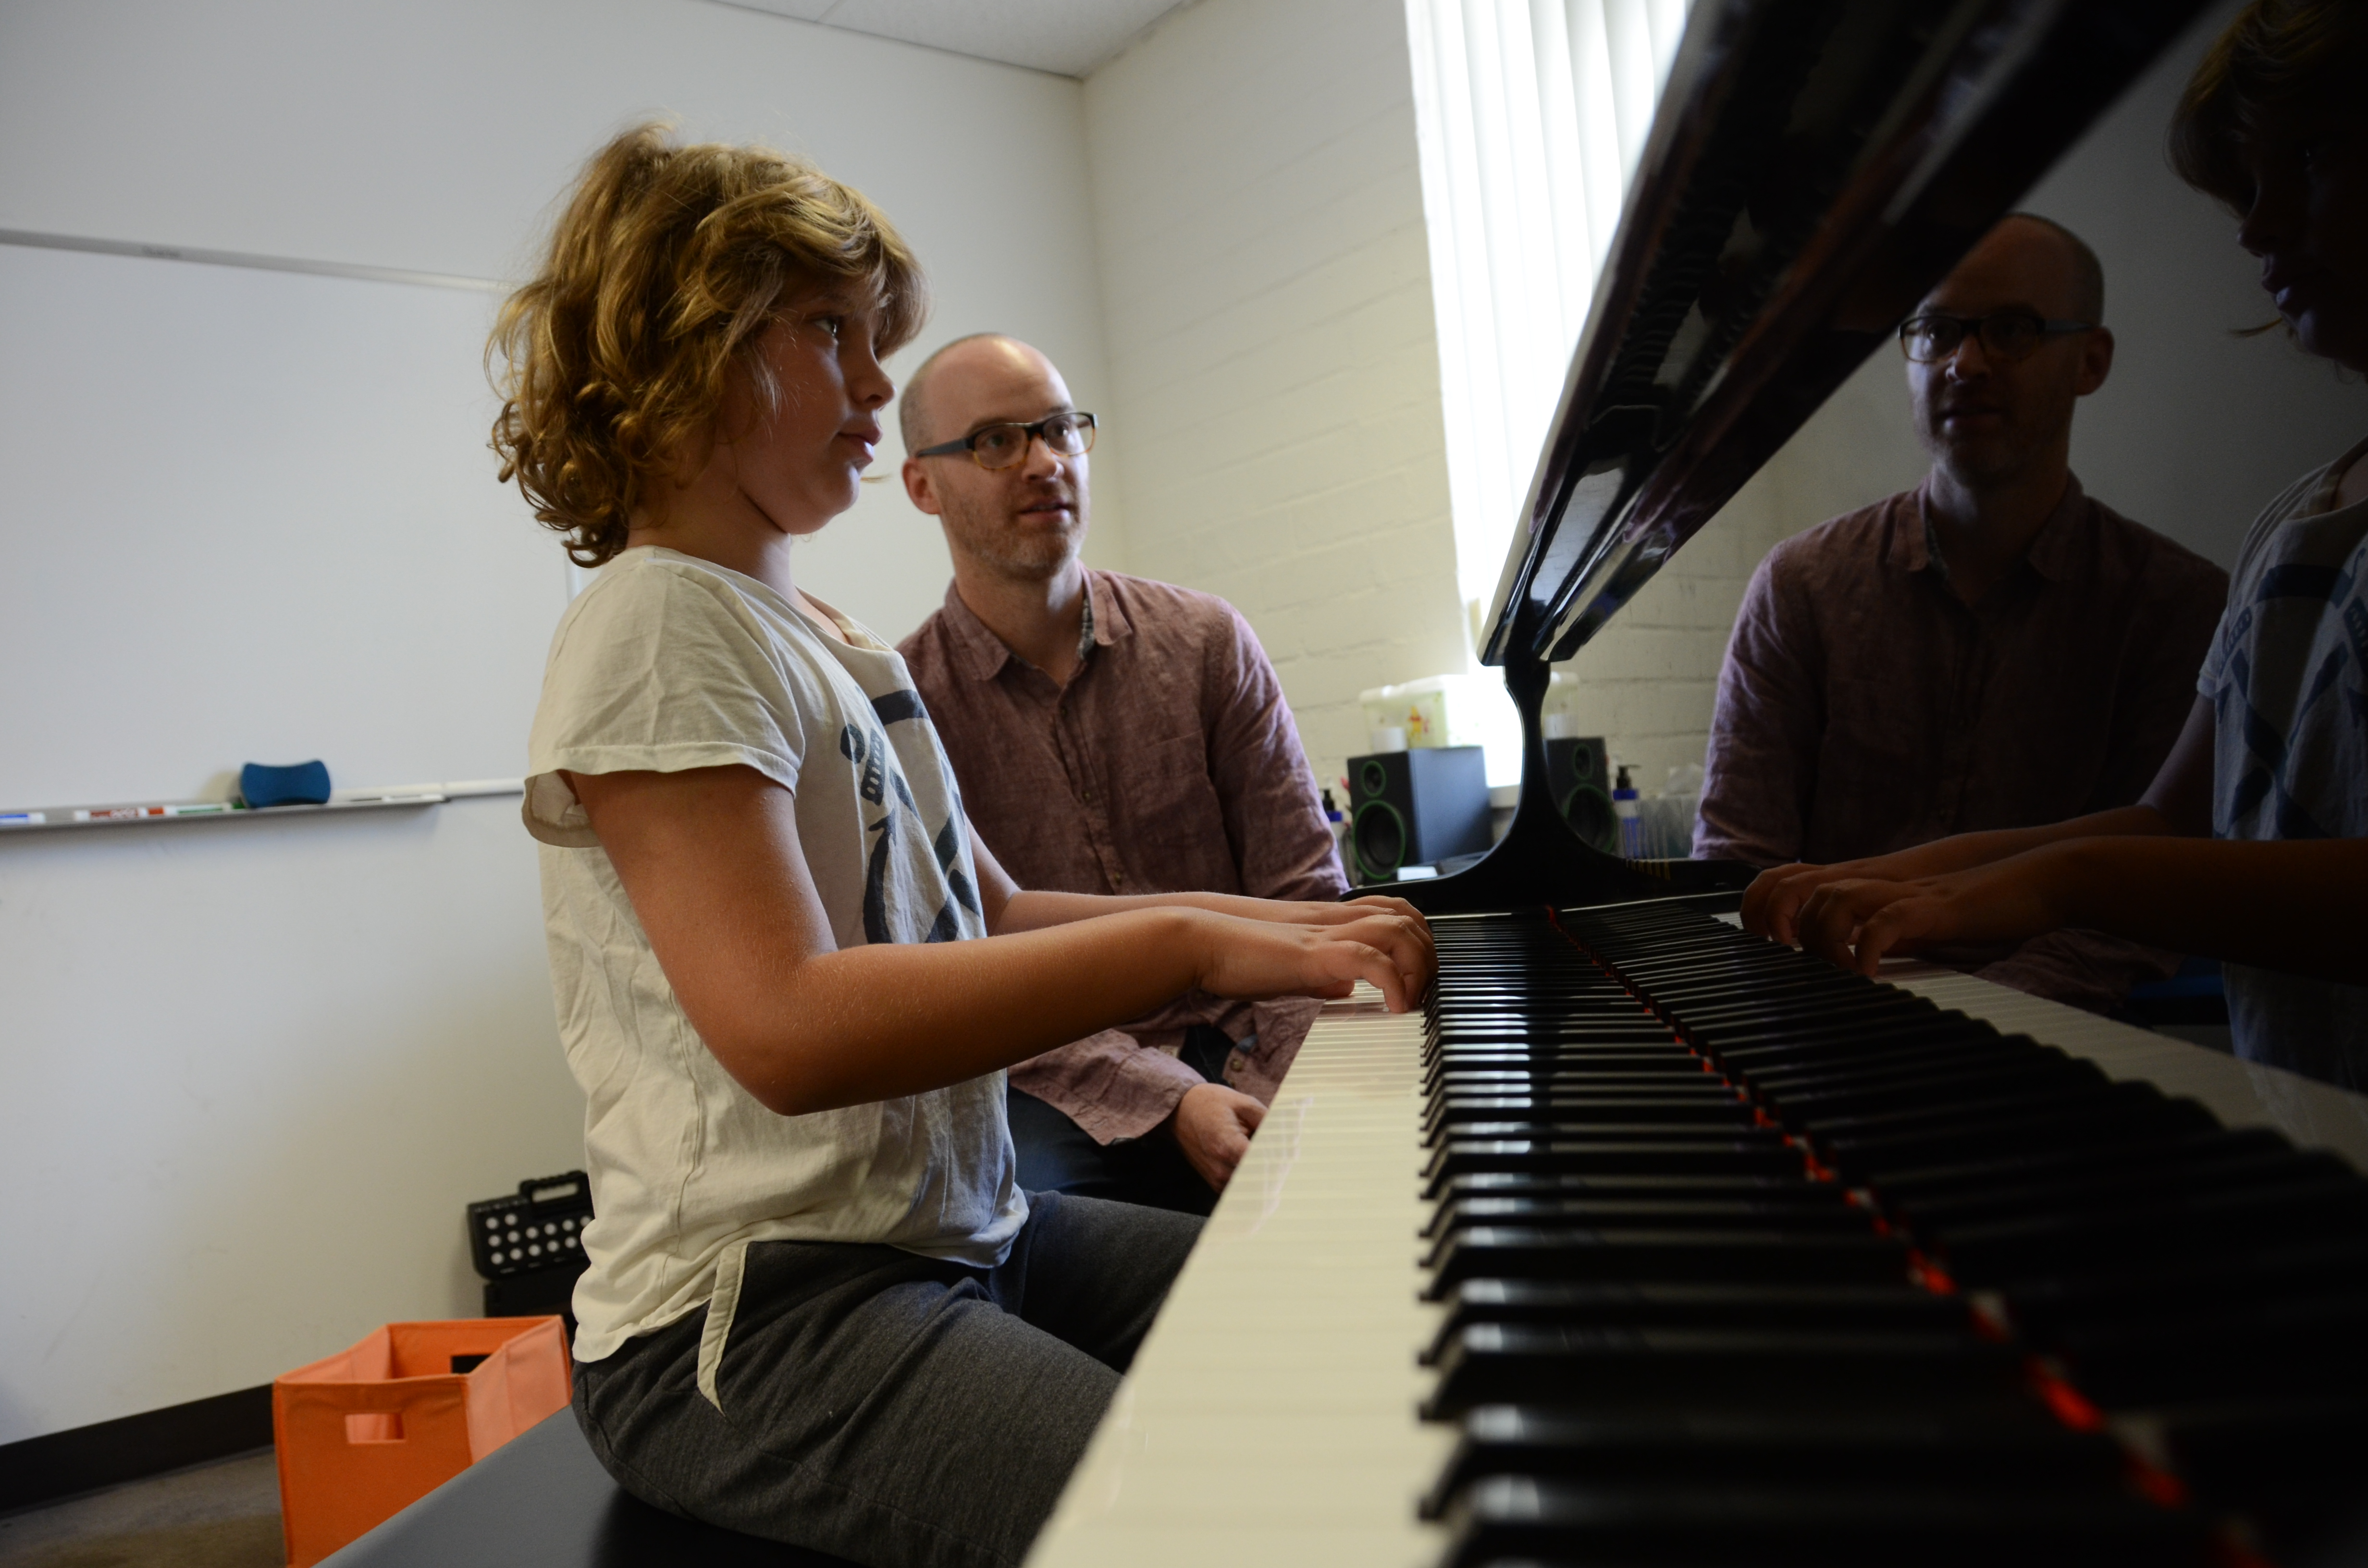 Judah Barson, 10, works through a complicated passage with encouragement from David Rhodes at Larchmont's Rhodes School of Music. Photo: Kimberly Gomez.